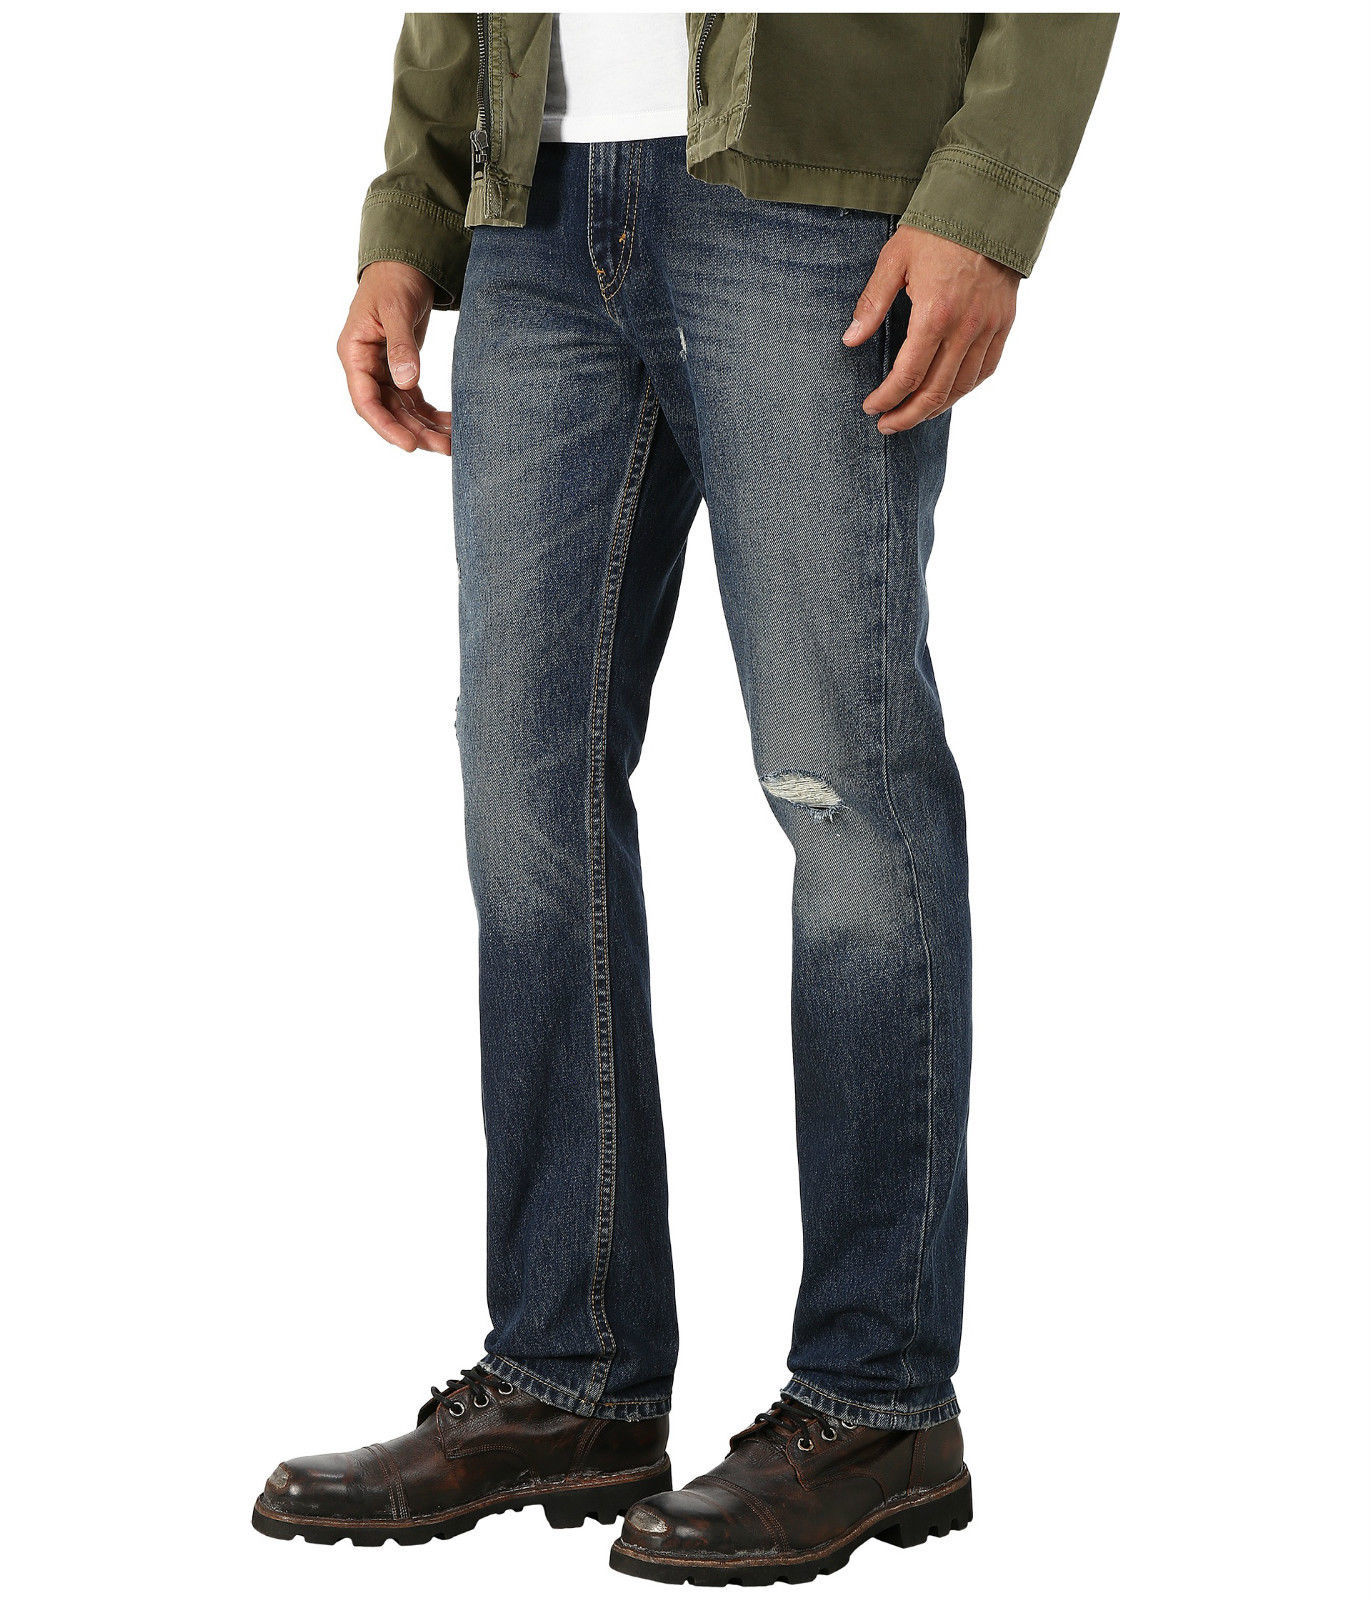 NEW LEVI'S STRAUSS 511 MEN'S SLIM FIT PREMIUM DISTRESSED DENIM JEANS 511-1808